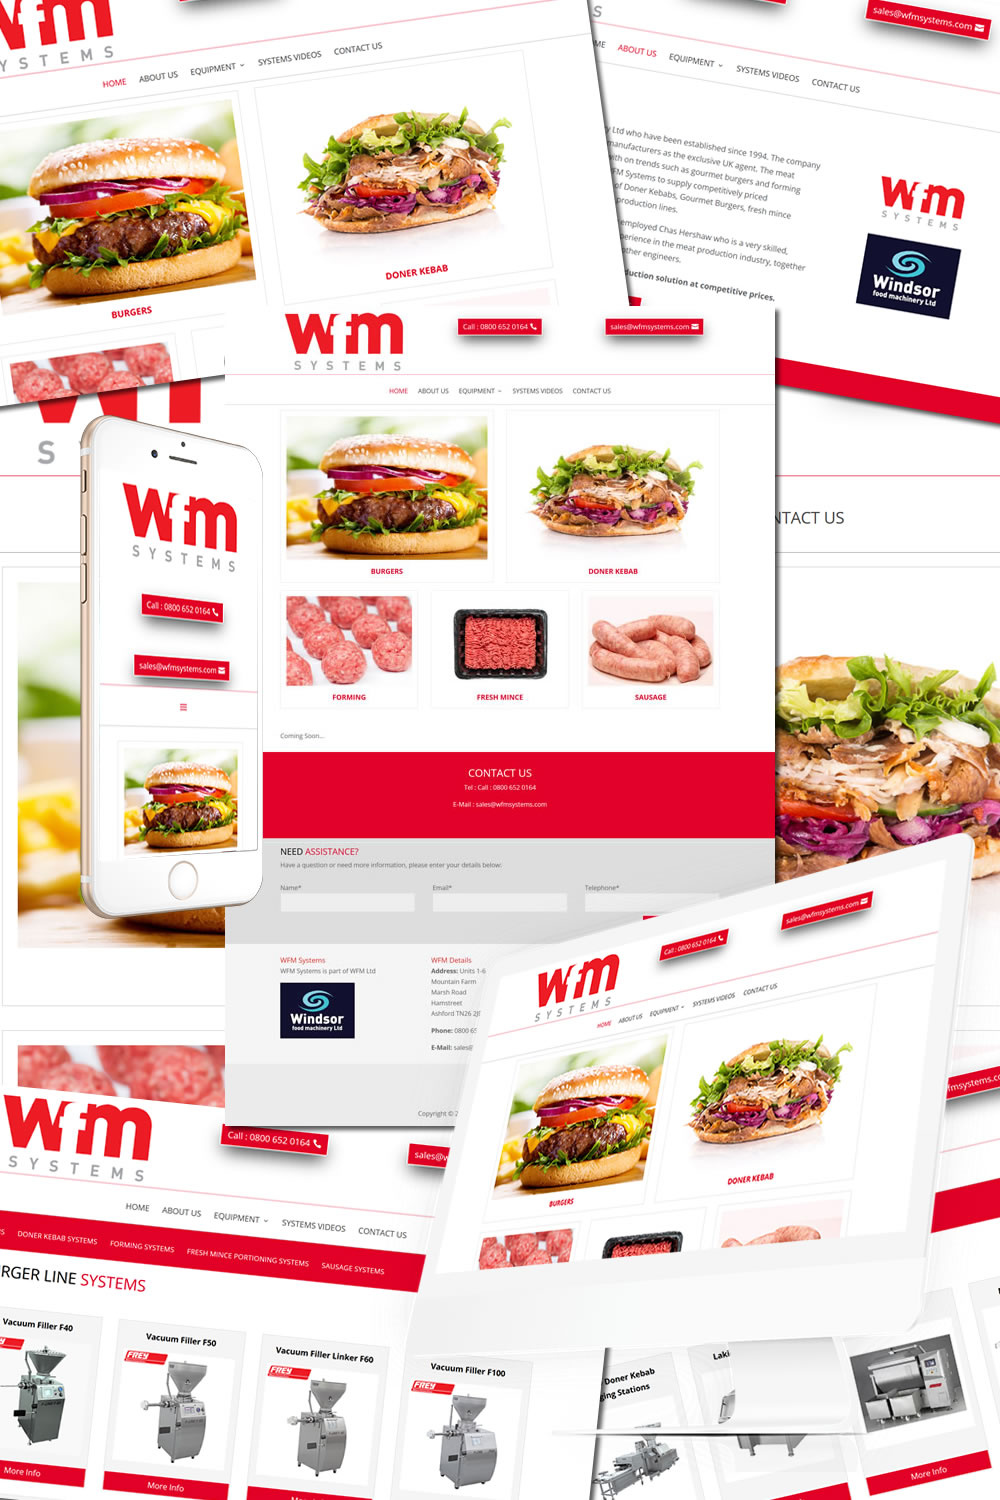 WFM Systems Website